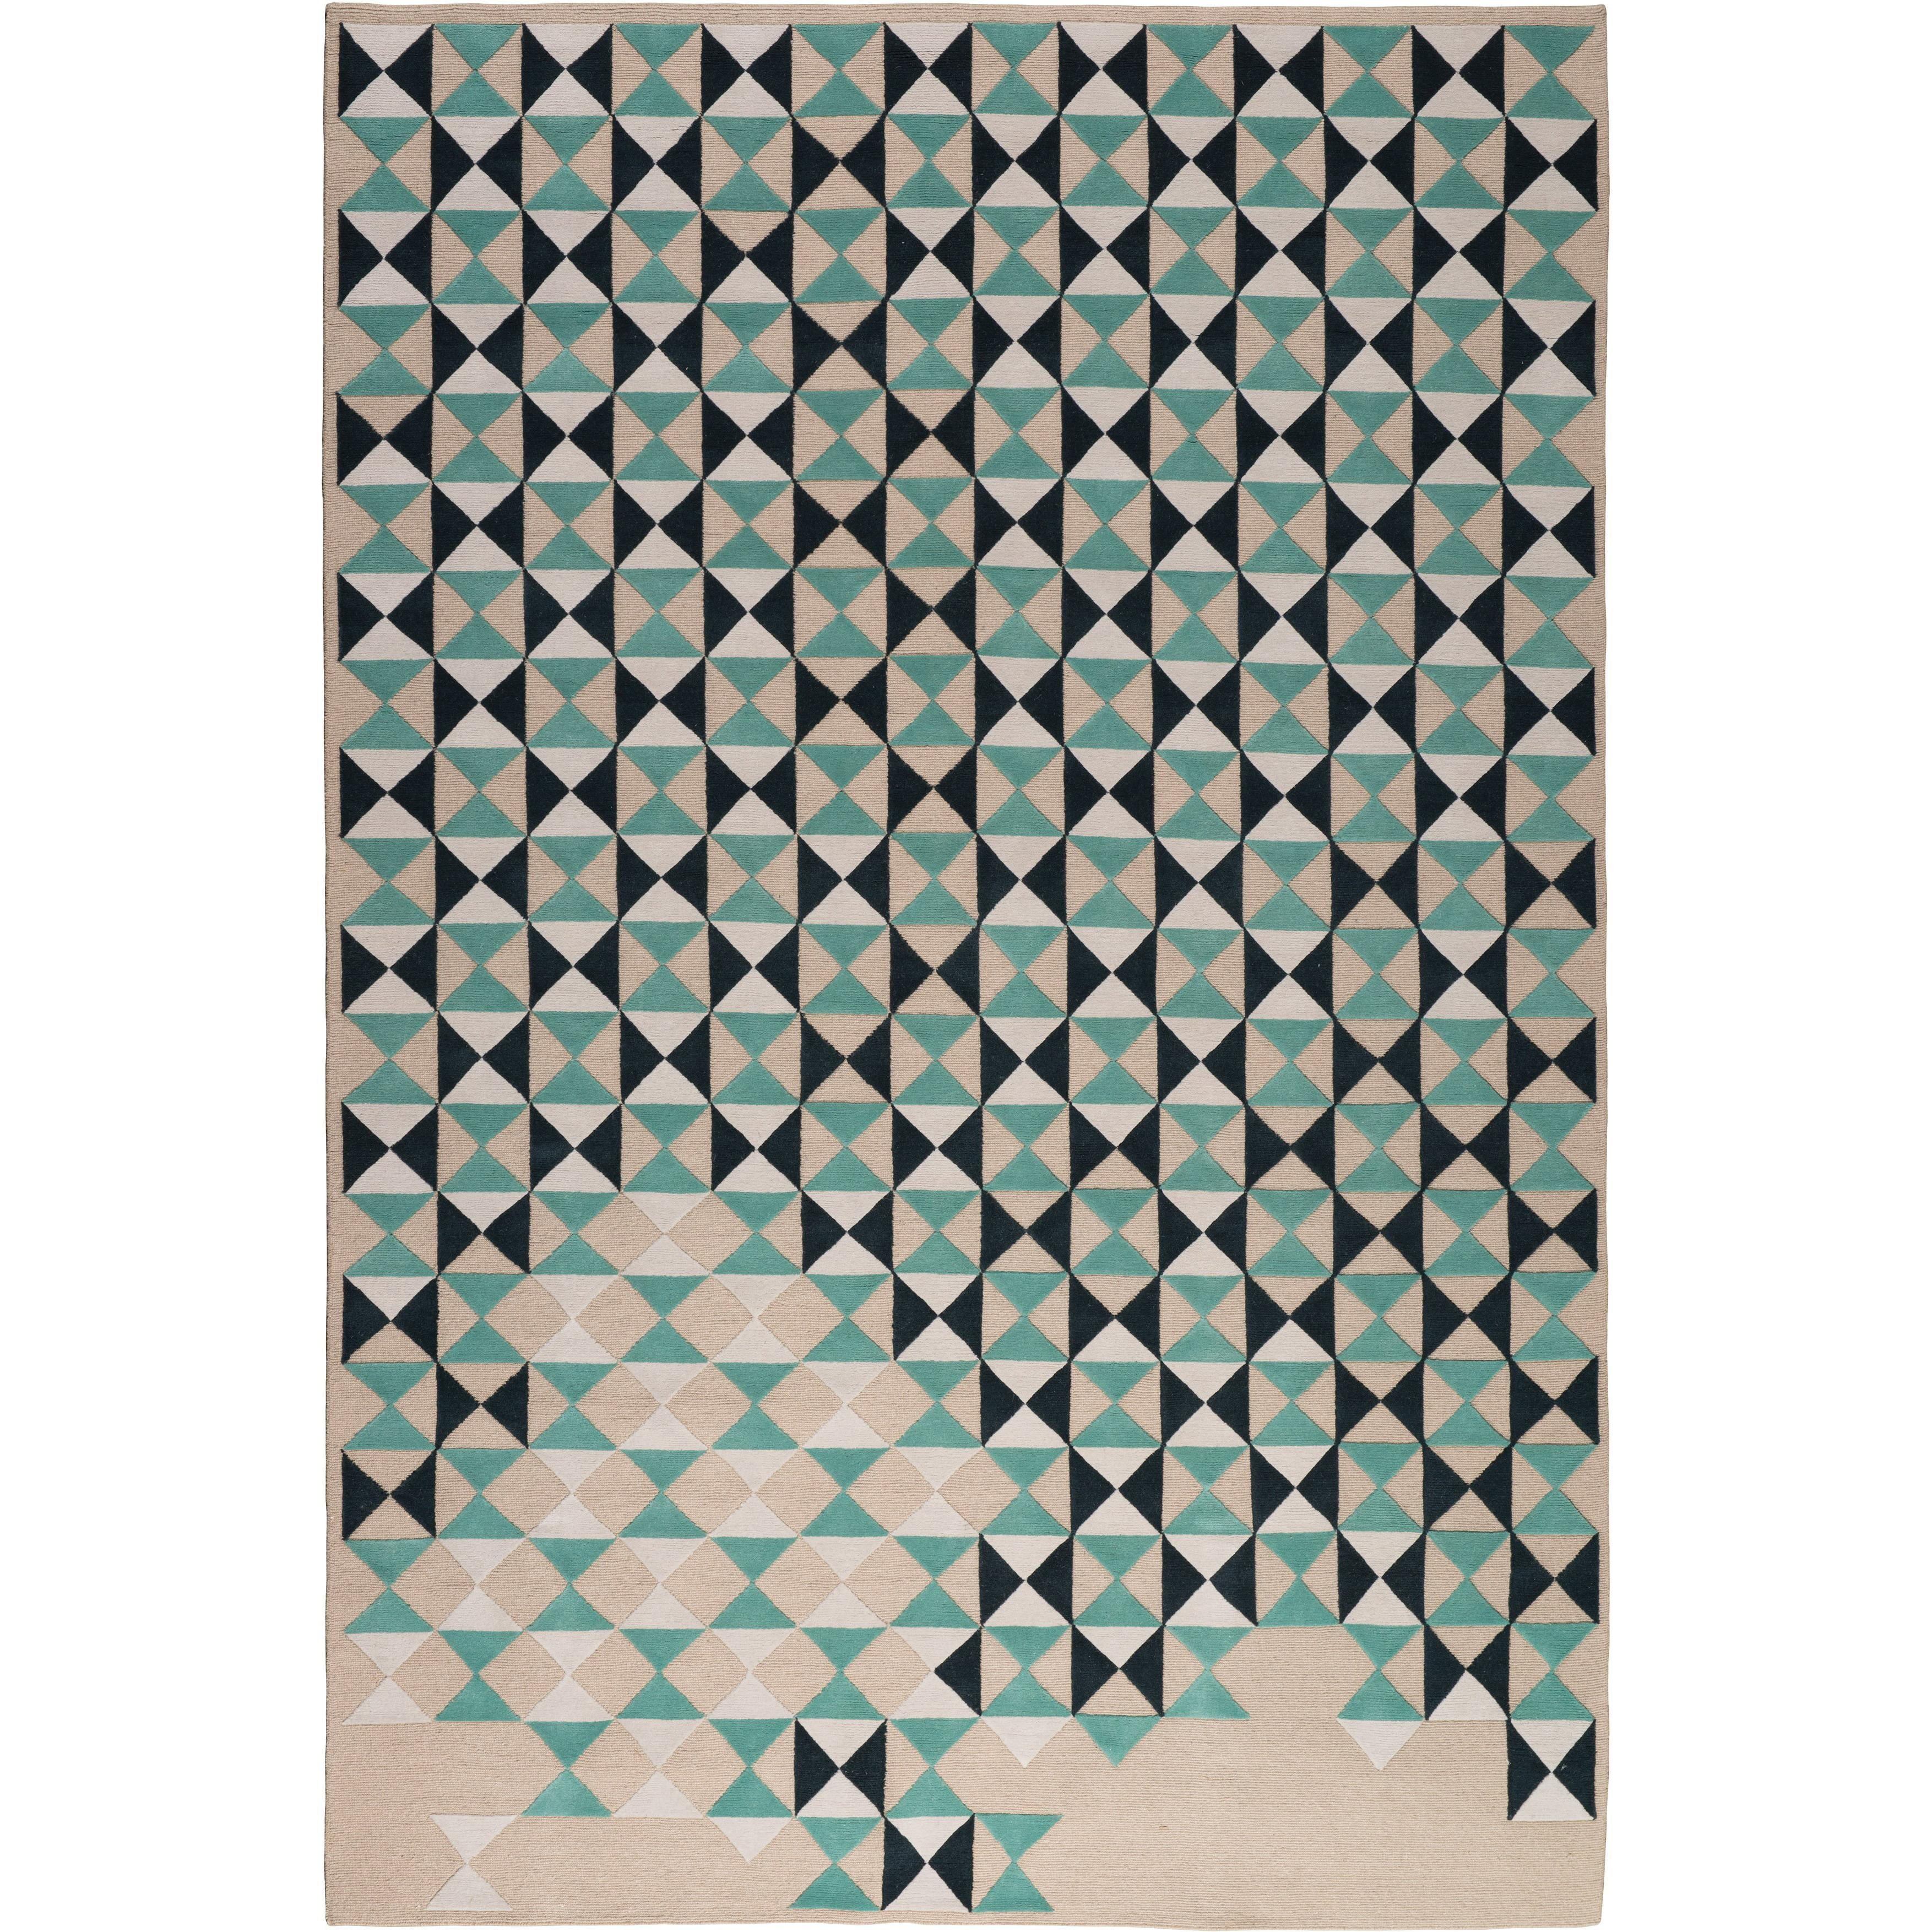 Deltille Hand-Knotted 10x8 Rug in Wool by Trine Kielland